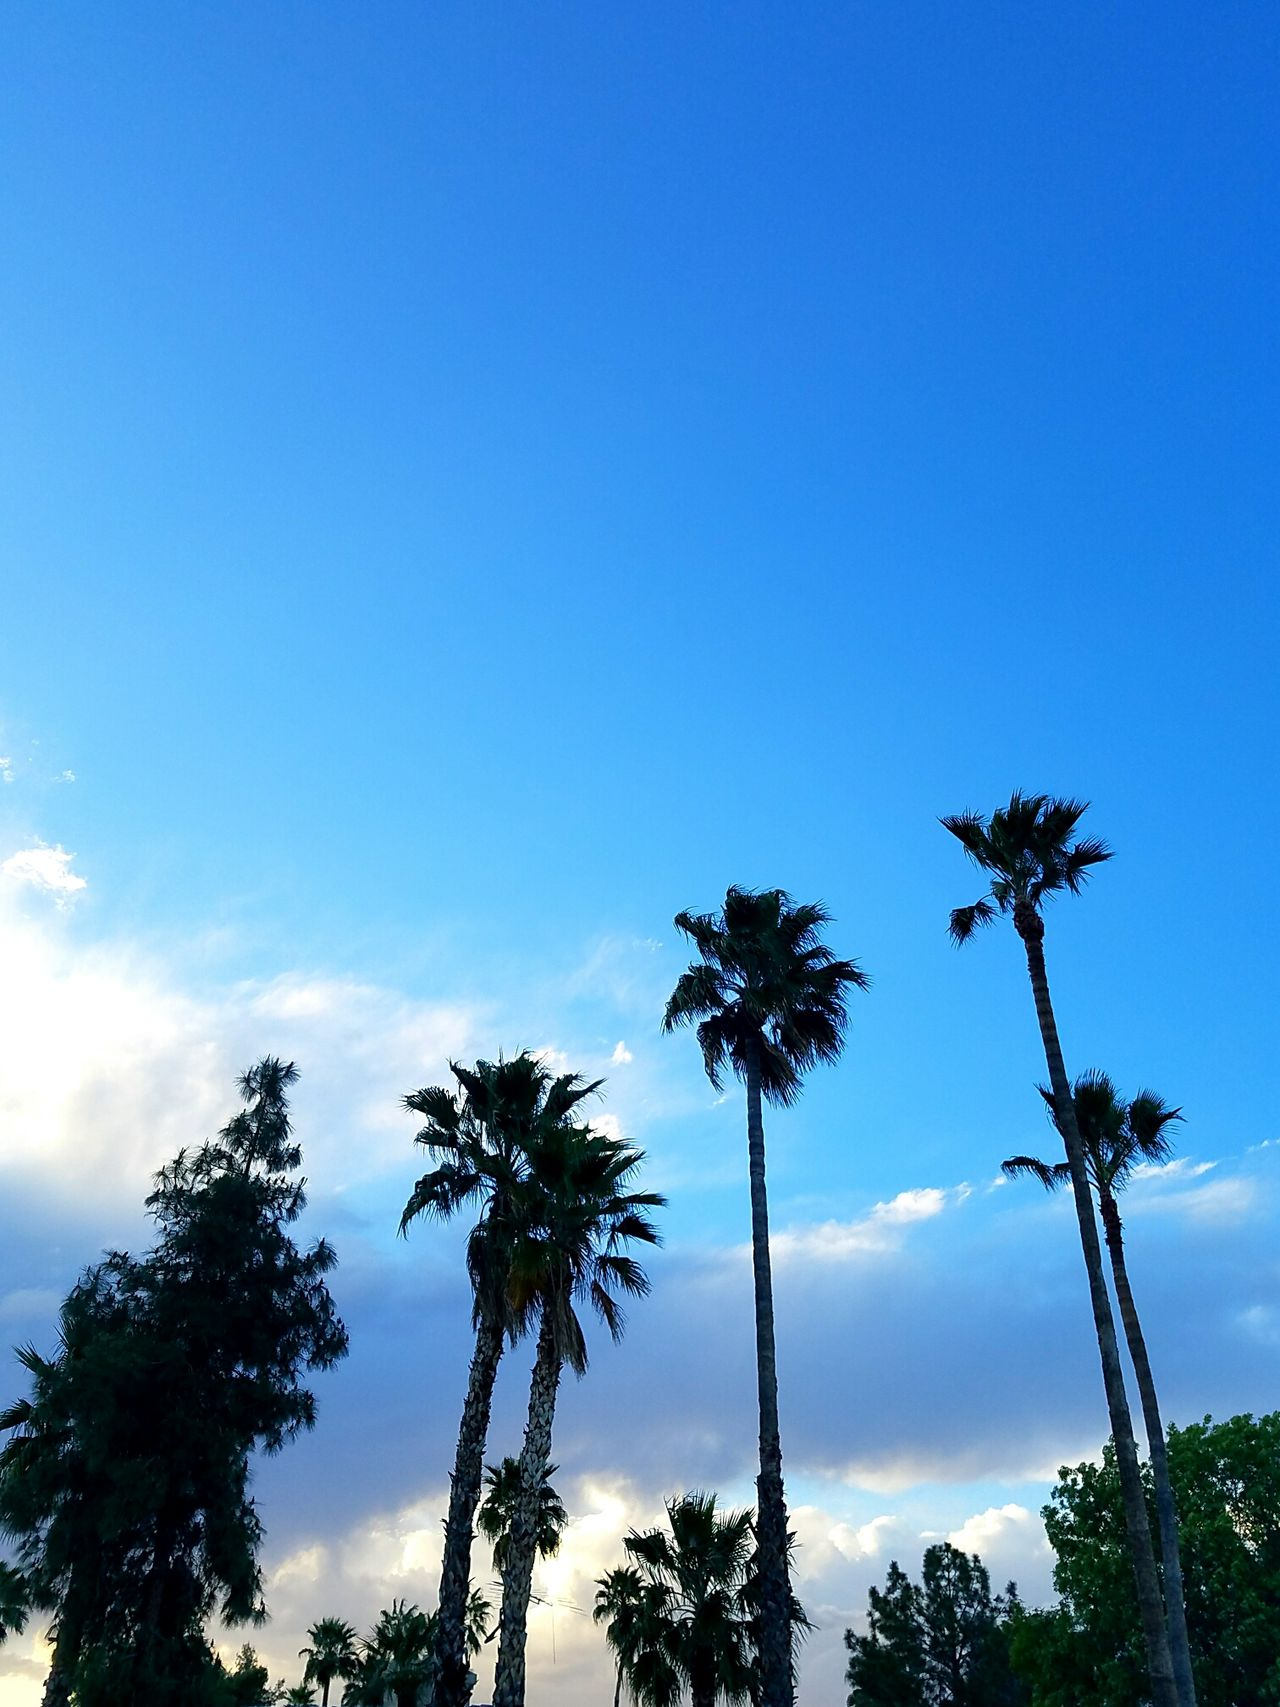 Tree Palm Tree Blue Sky Nature Low Angle View Beauty In Nature Outdoors Silhouette Cloudscape Storm Cloud Cloud - Sky Dramatic Sky Premium Collection EyeEm Vision EyeEm Masterclass EyeEm Best Shots BestEyeemShots EyeEmBestEdits BestofEyeEm